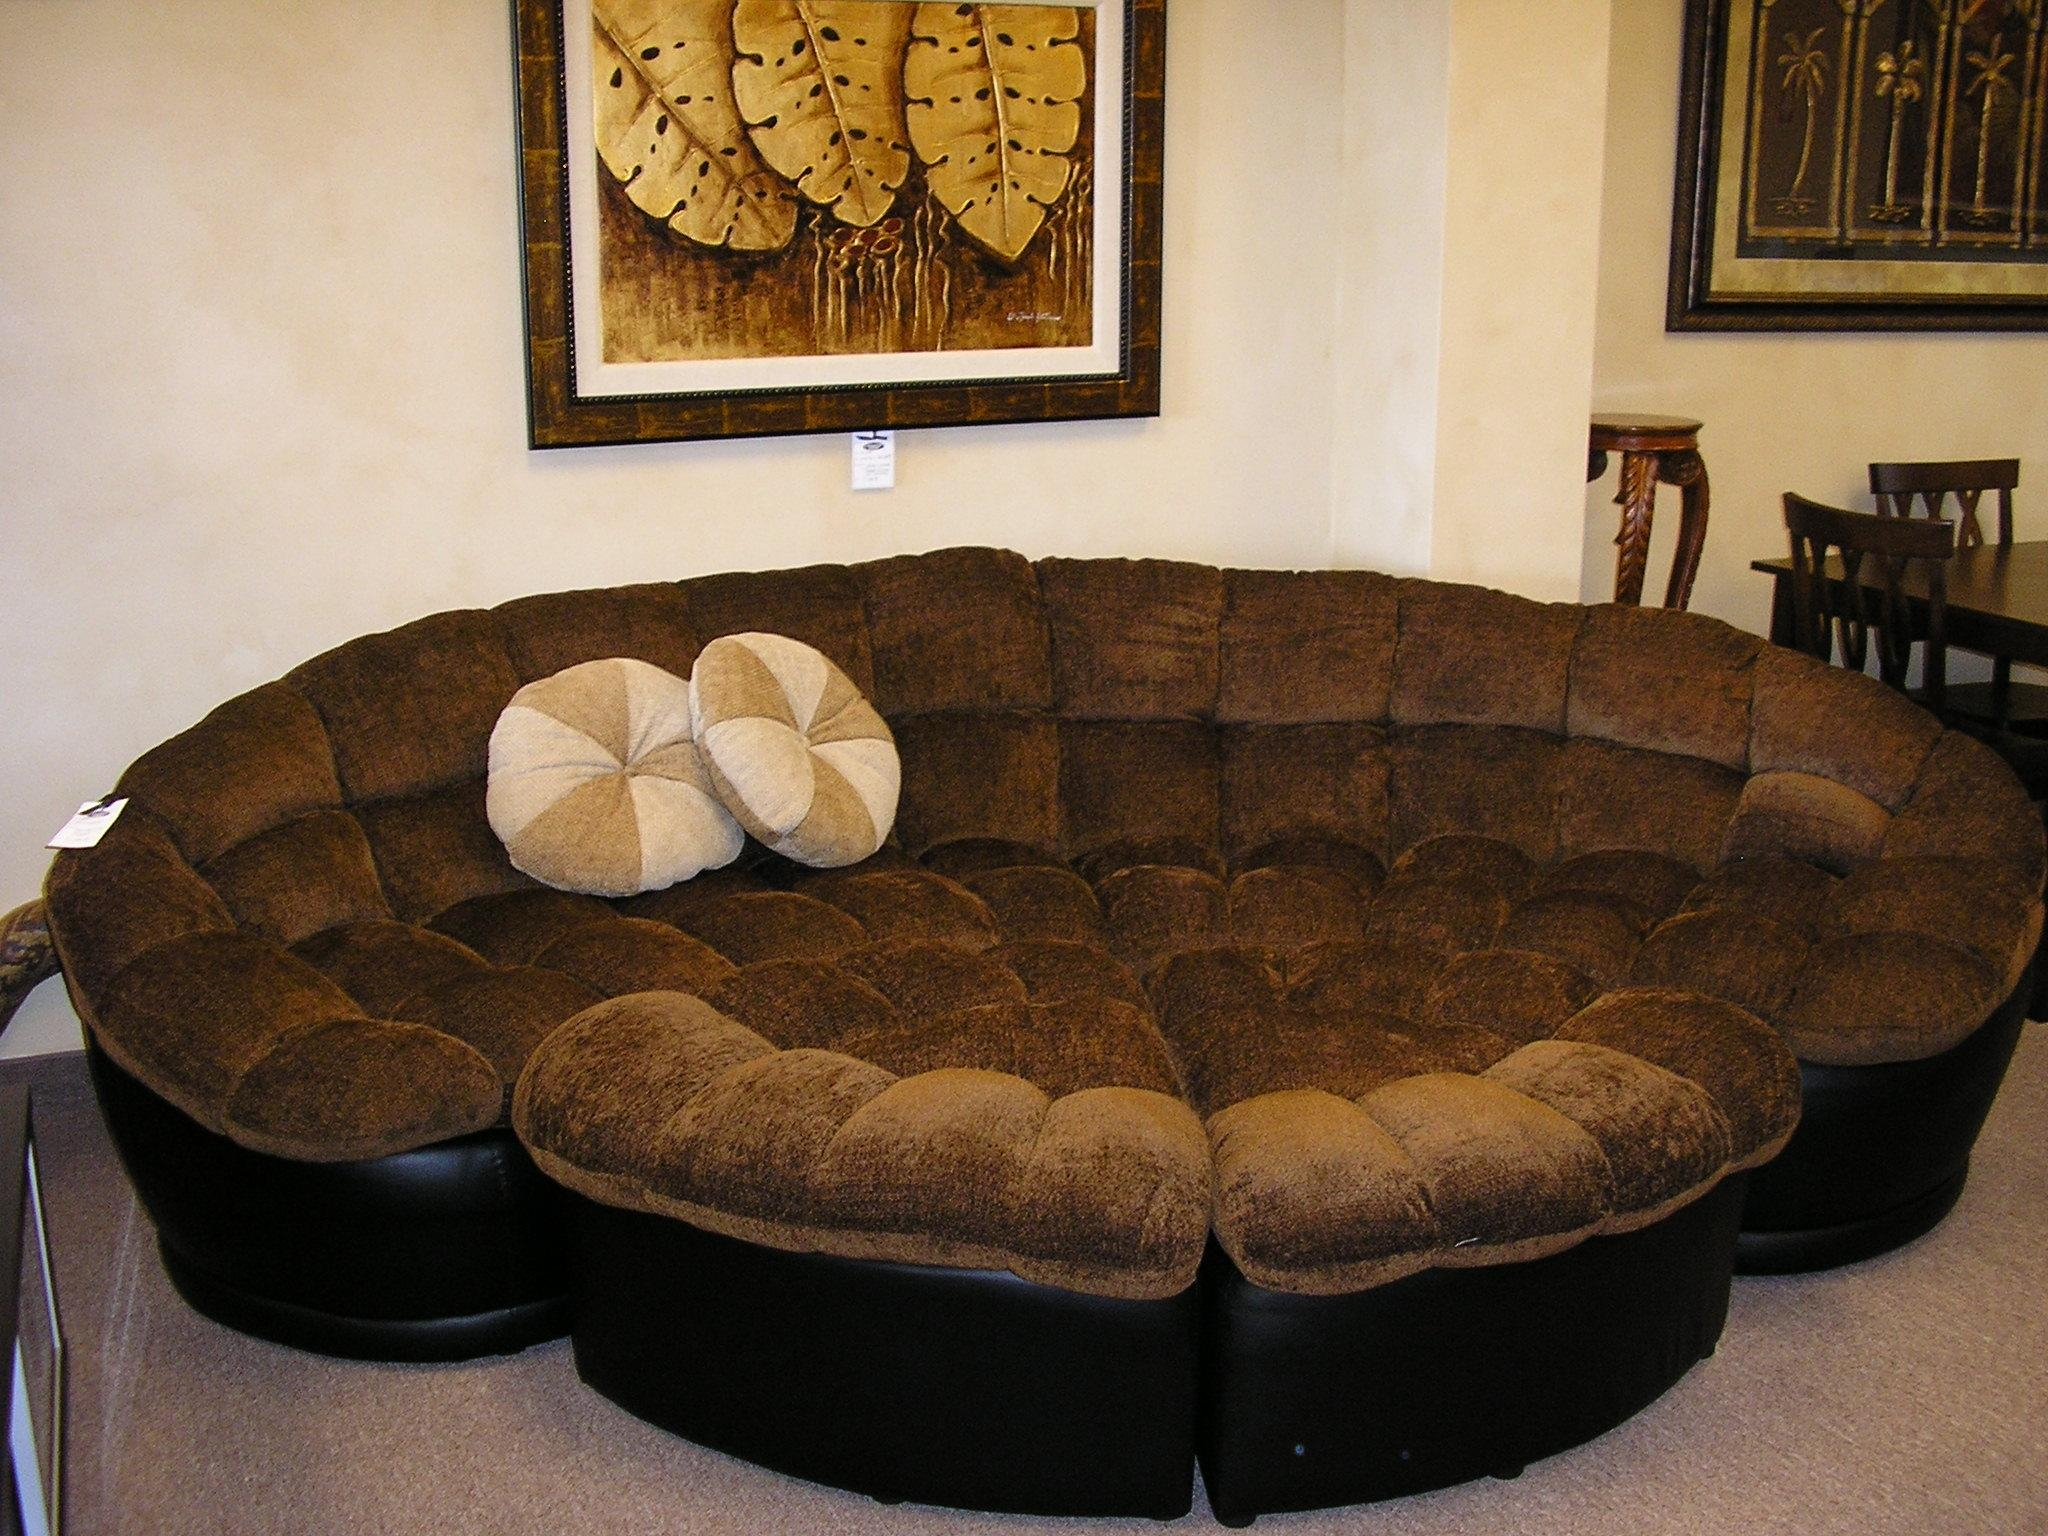 Round Sectional Sofas Best Ever Uh8 | Umpsa 78 Sofas Inside Media Sofa Sectionals (Image 16 of 20)